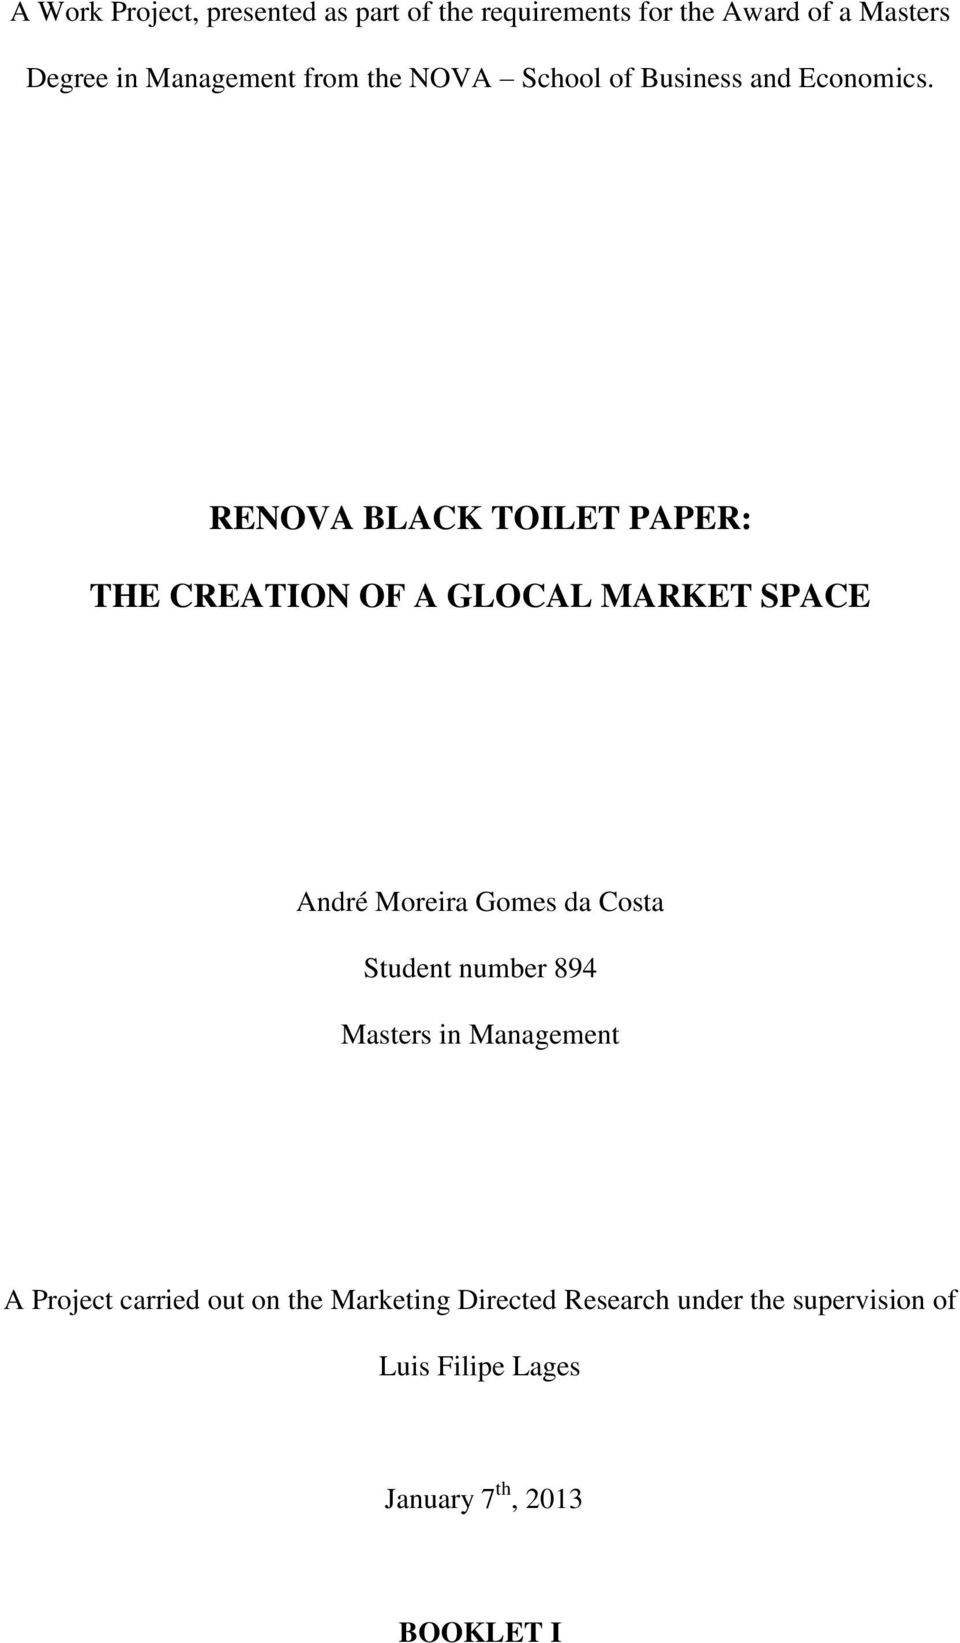 RENOVA BLACK TOILET PAPER: THE CREATION OF A GLOCAL MARKET SPACE André Moreira Gomes da Costa Student